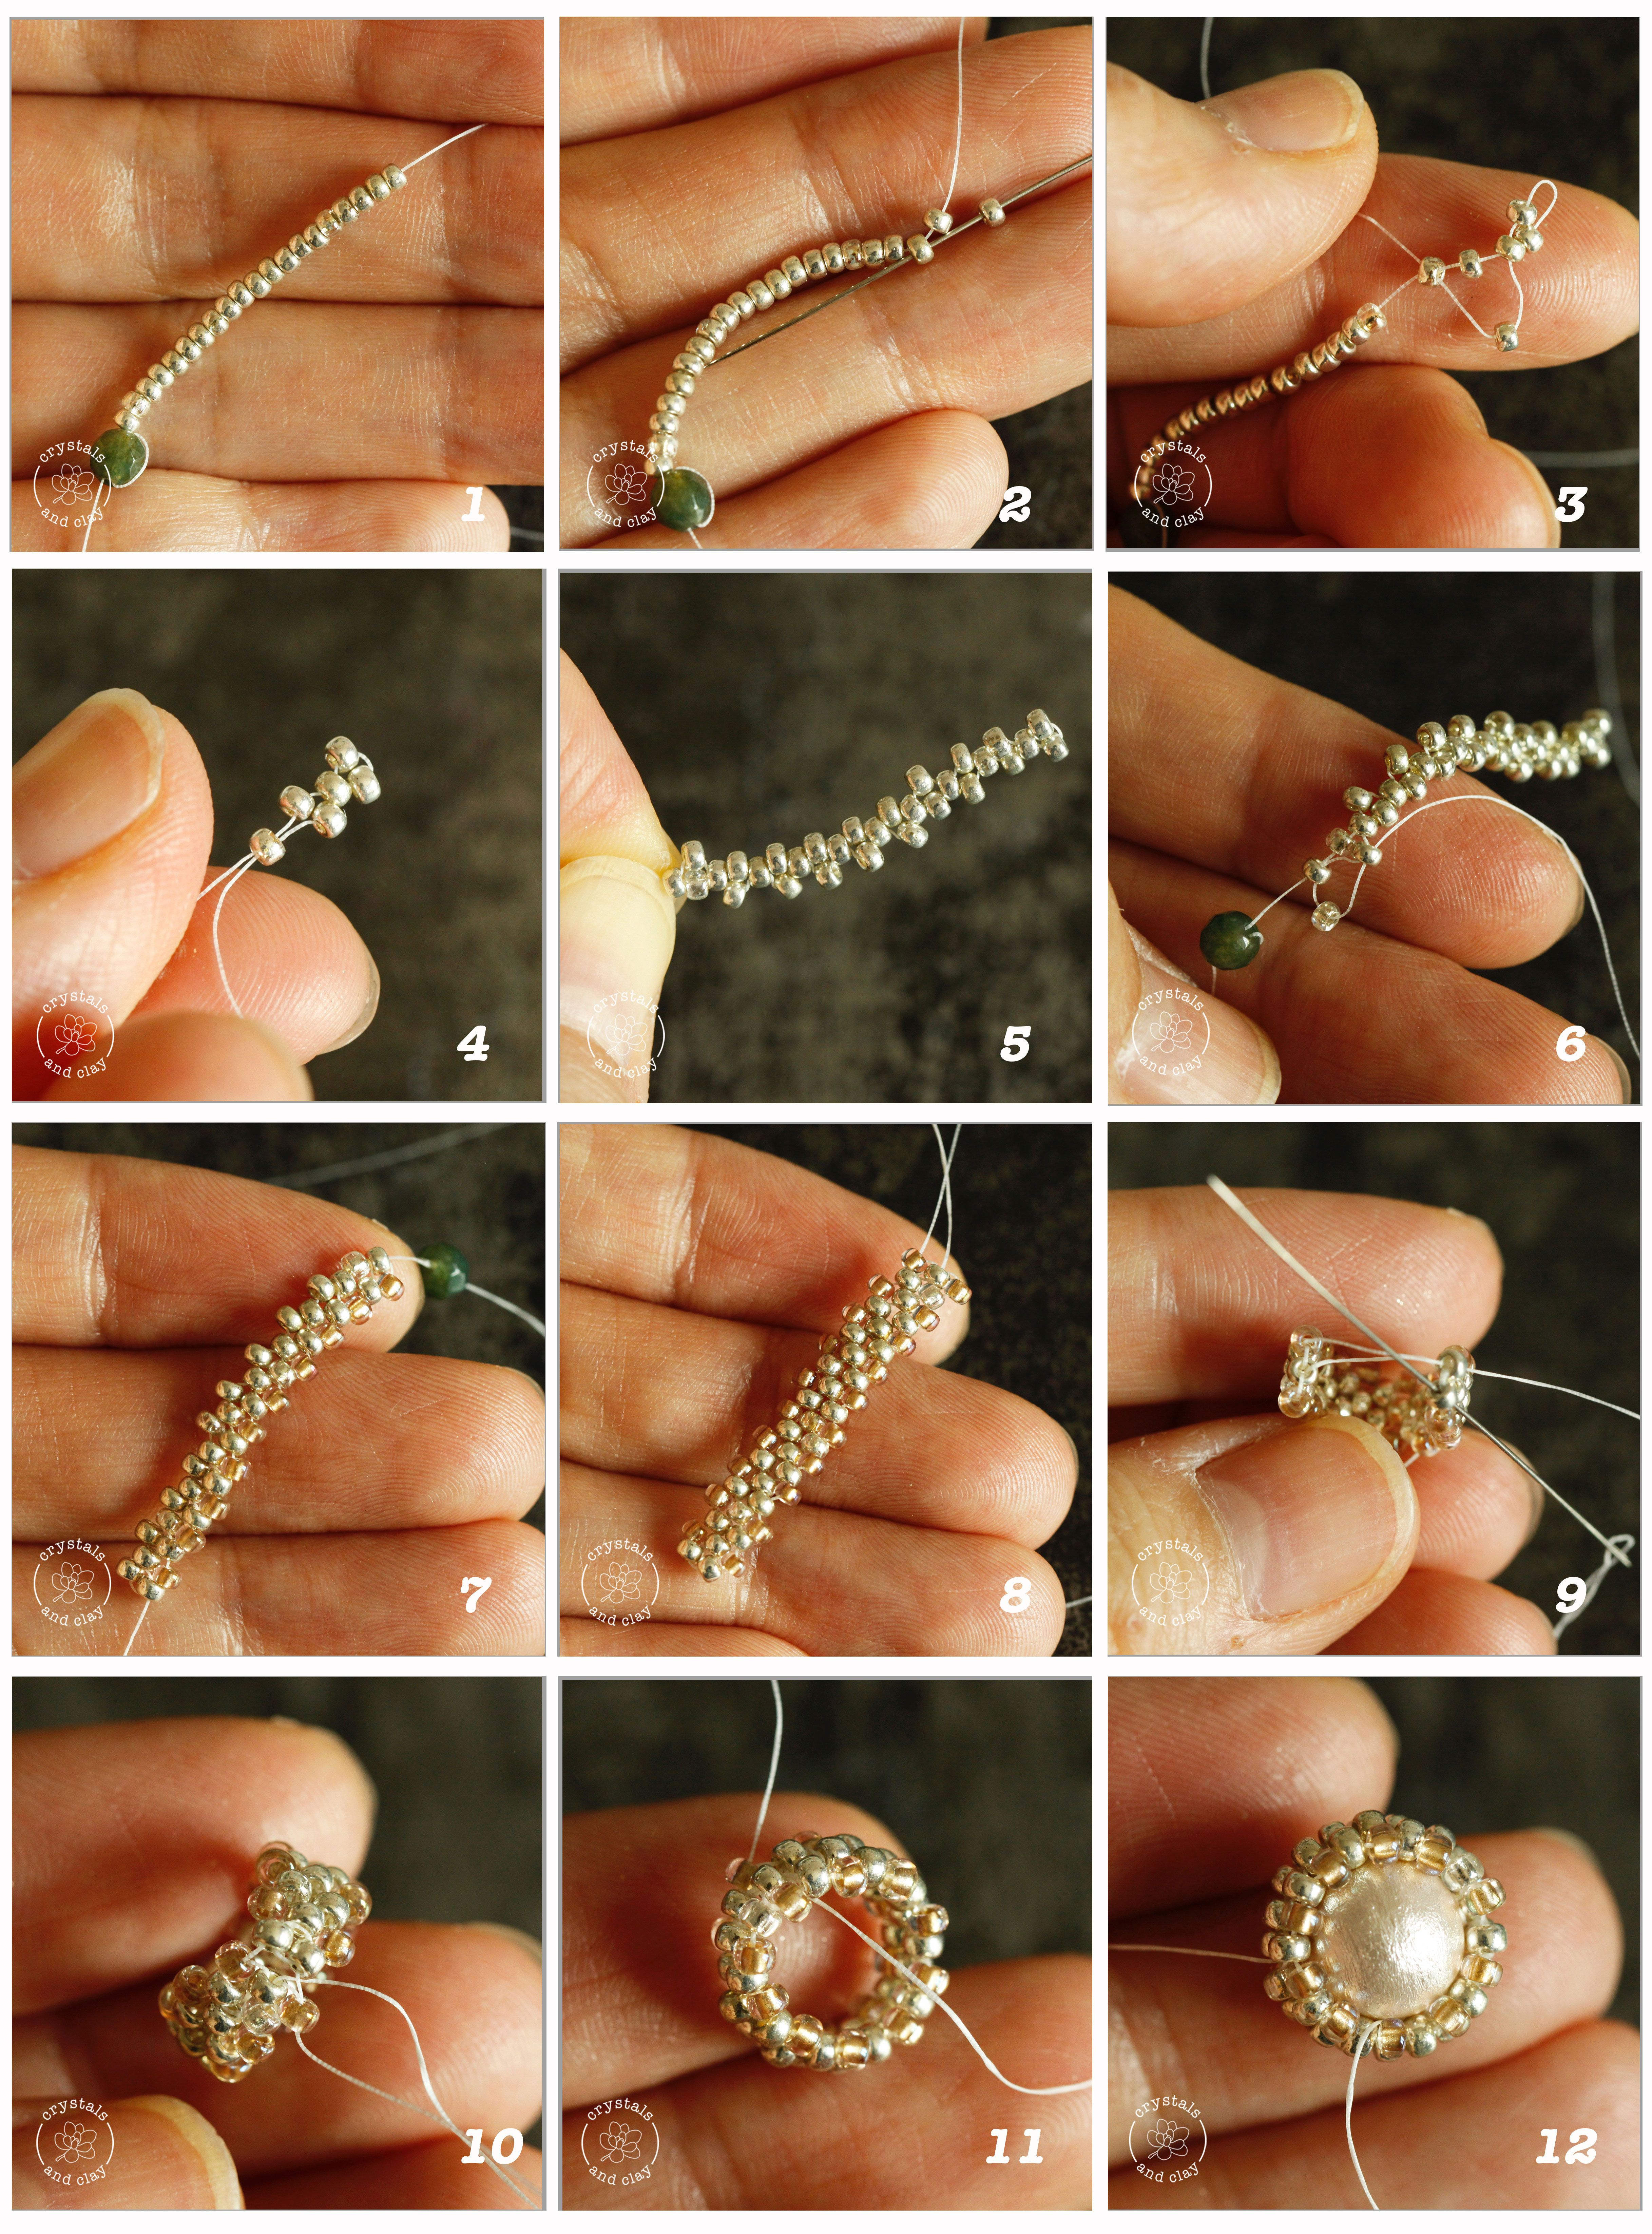 how to make beaded ring using peyote stitch This tutorial shows you step-by-step how to make a bead